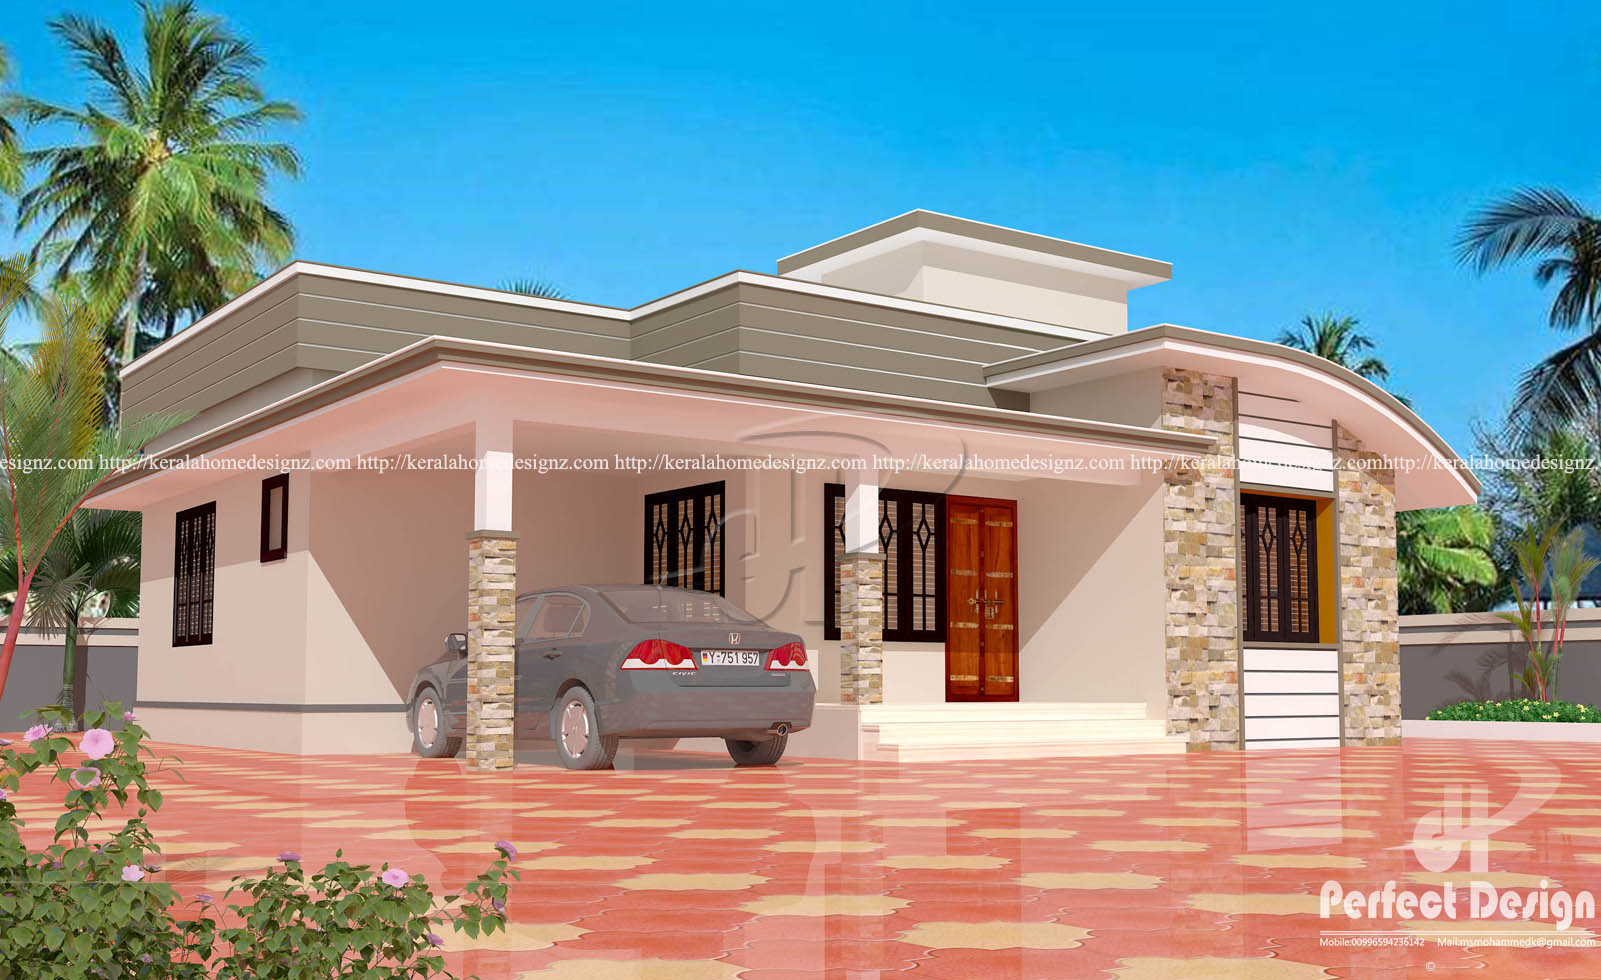 13 Lakhs Cost Estimated Modern Home Design Kerala Home Design